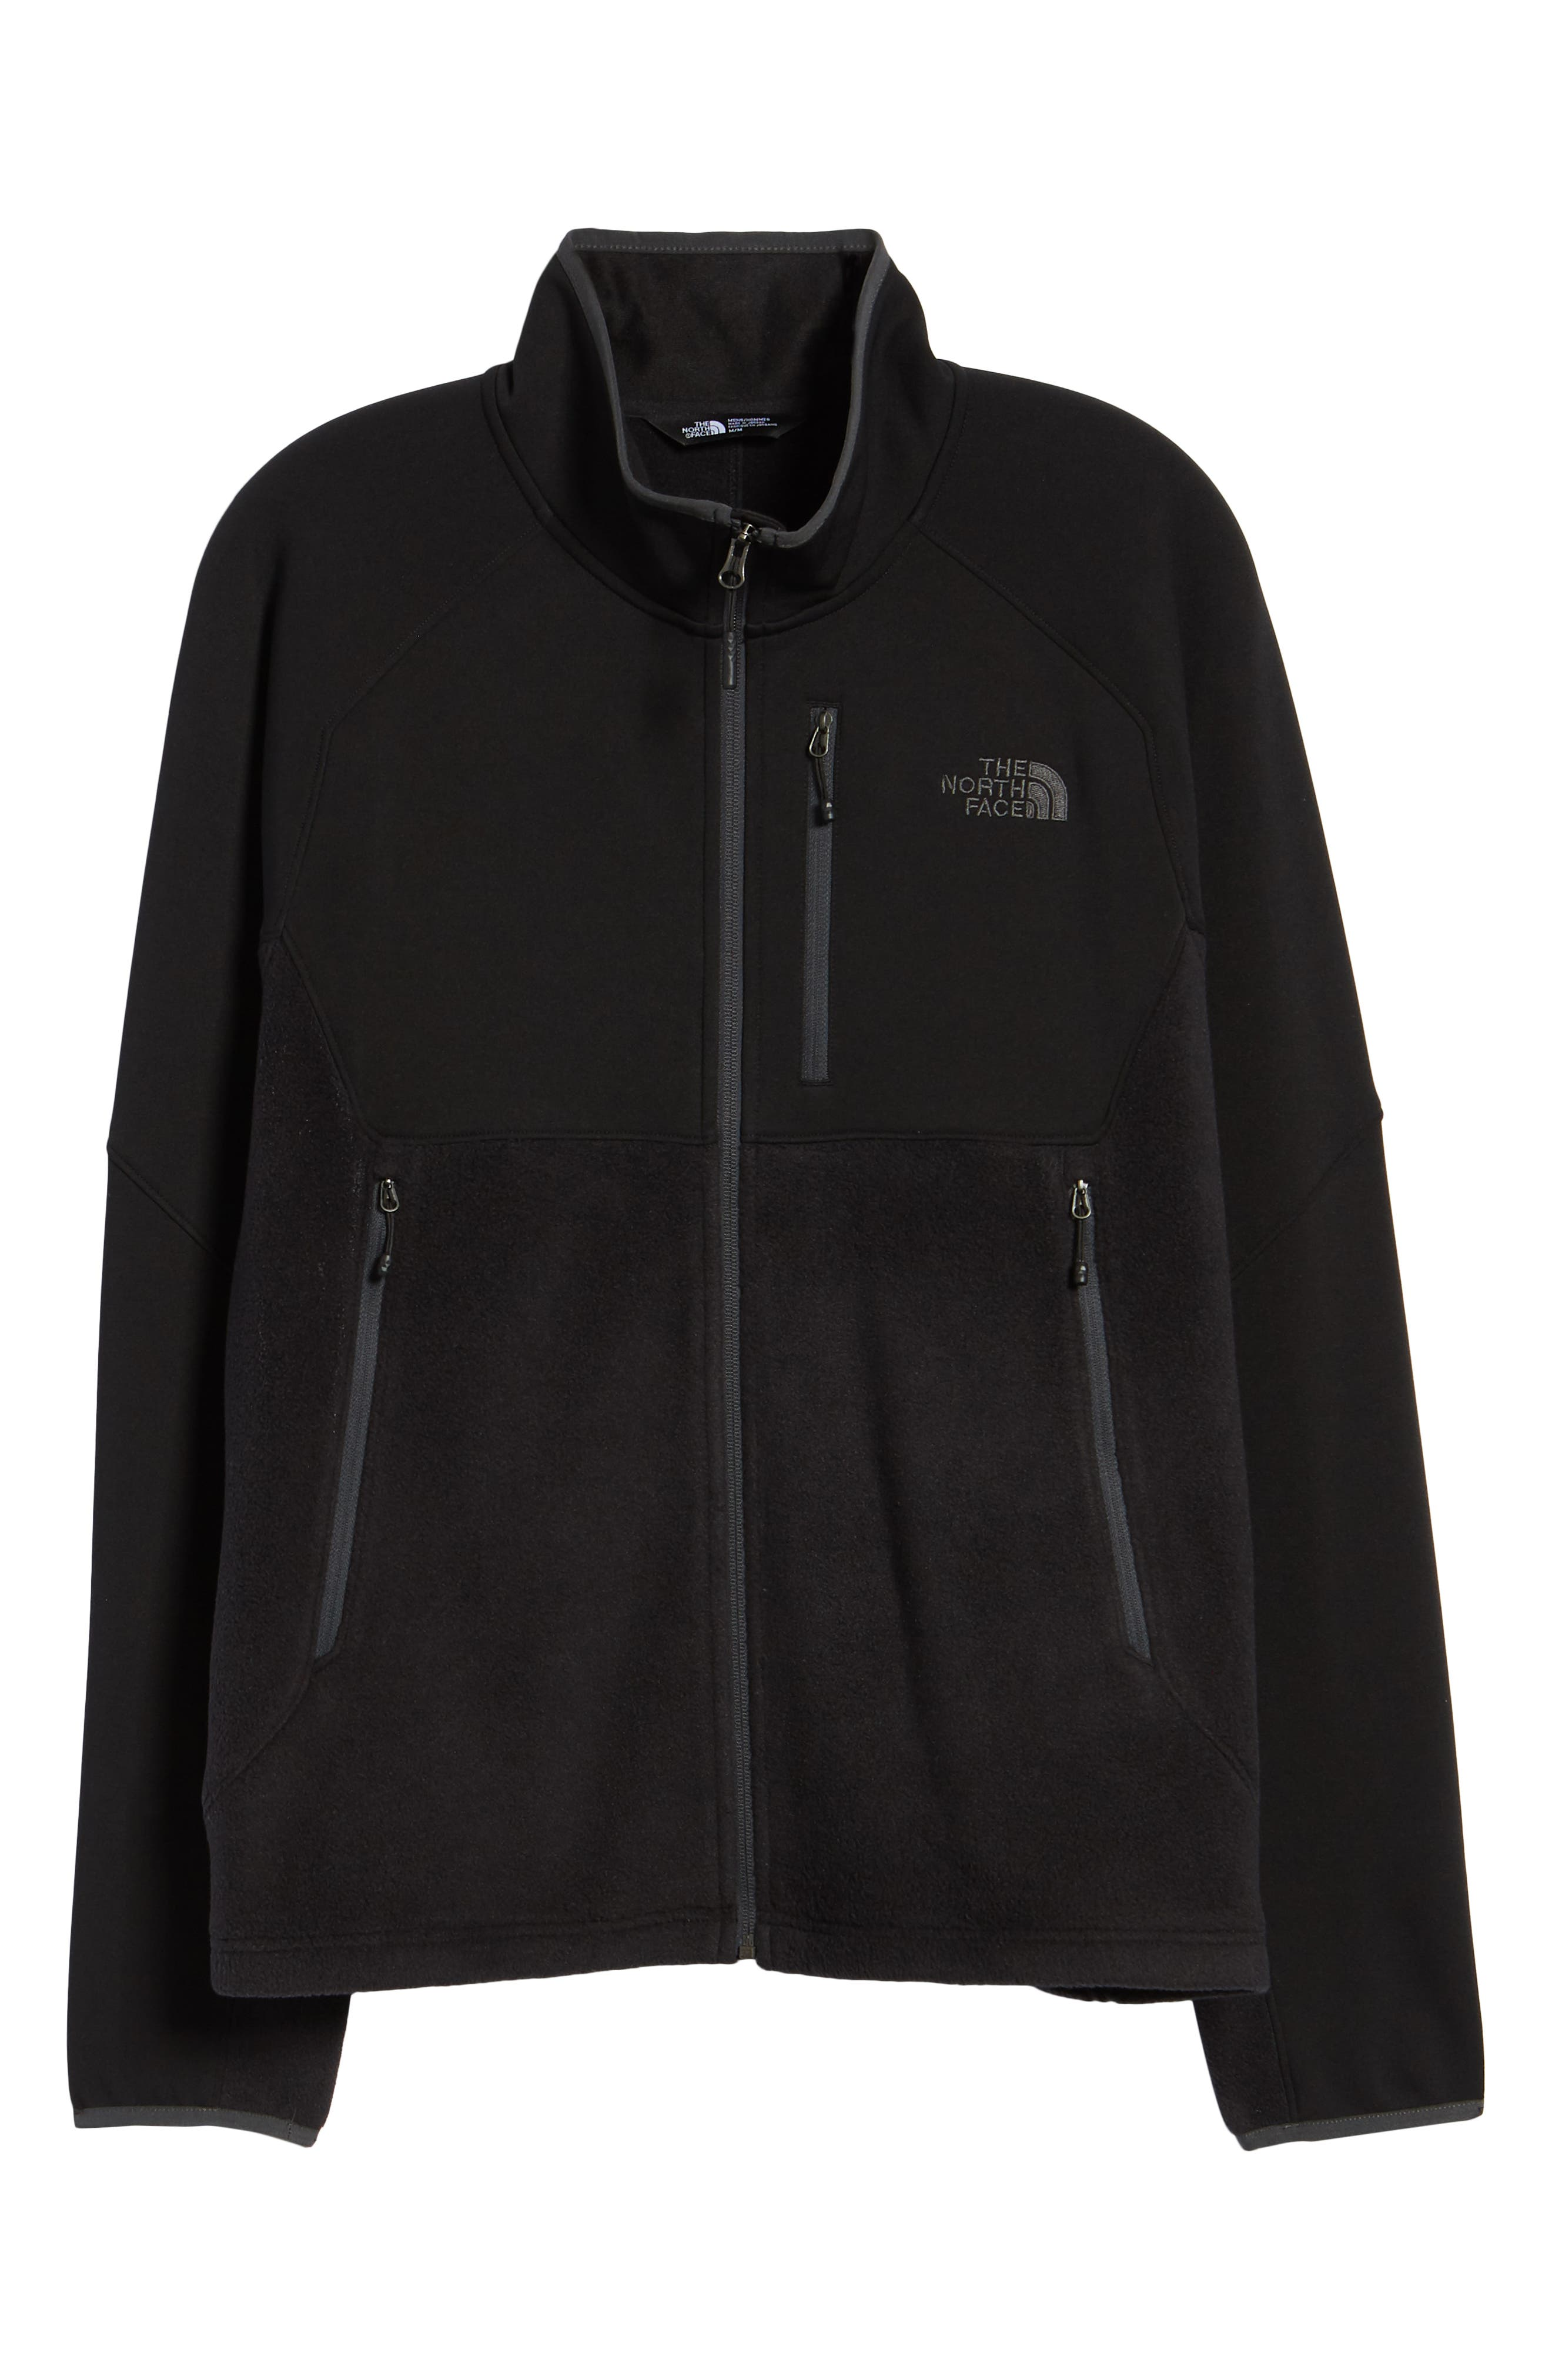 Tolmie Peak Hybrid Water Repellent Zip Jacket,                             Alternate thumbnail 6, color,                             TNF BLACK/ TNF BLACK